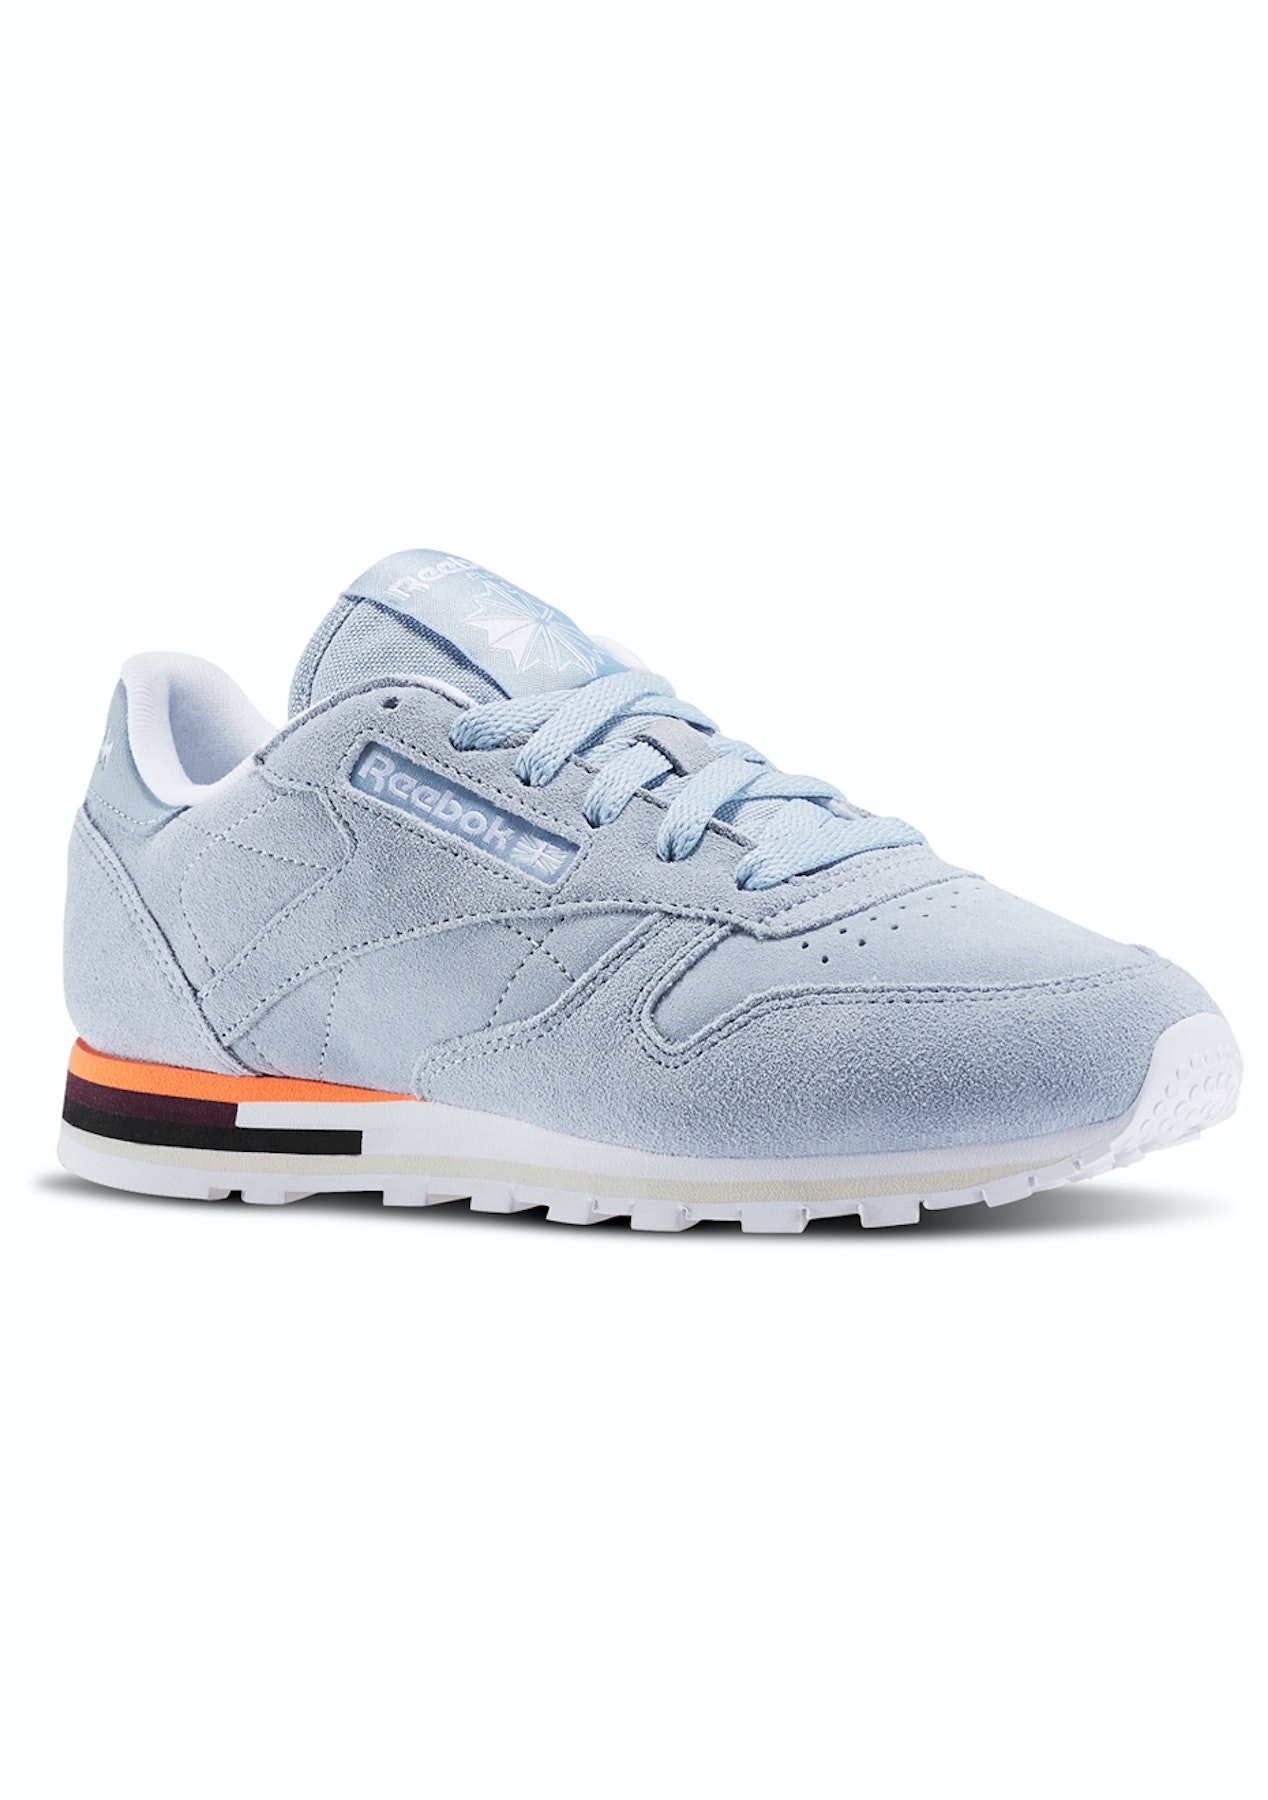 8ec74362beb Reebok Womens - Classic Leather Mh Gable Grey White - Free Shipping Shoe  Sale - Onceit